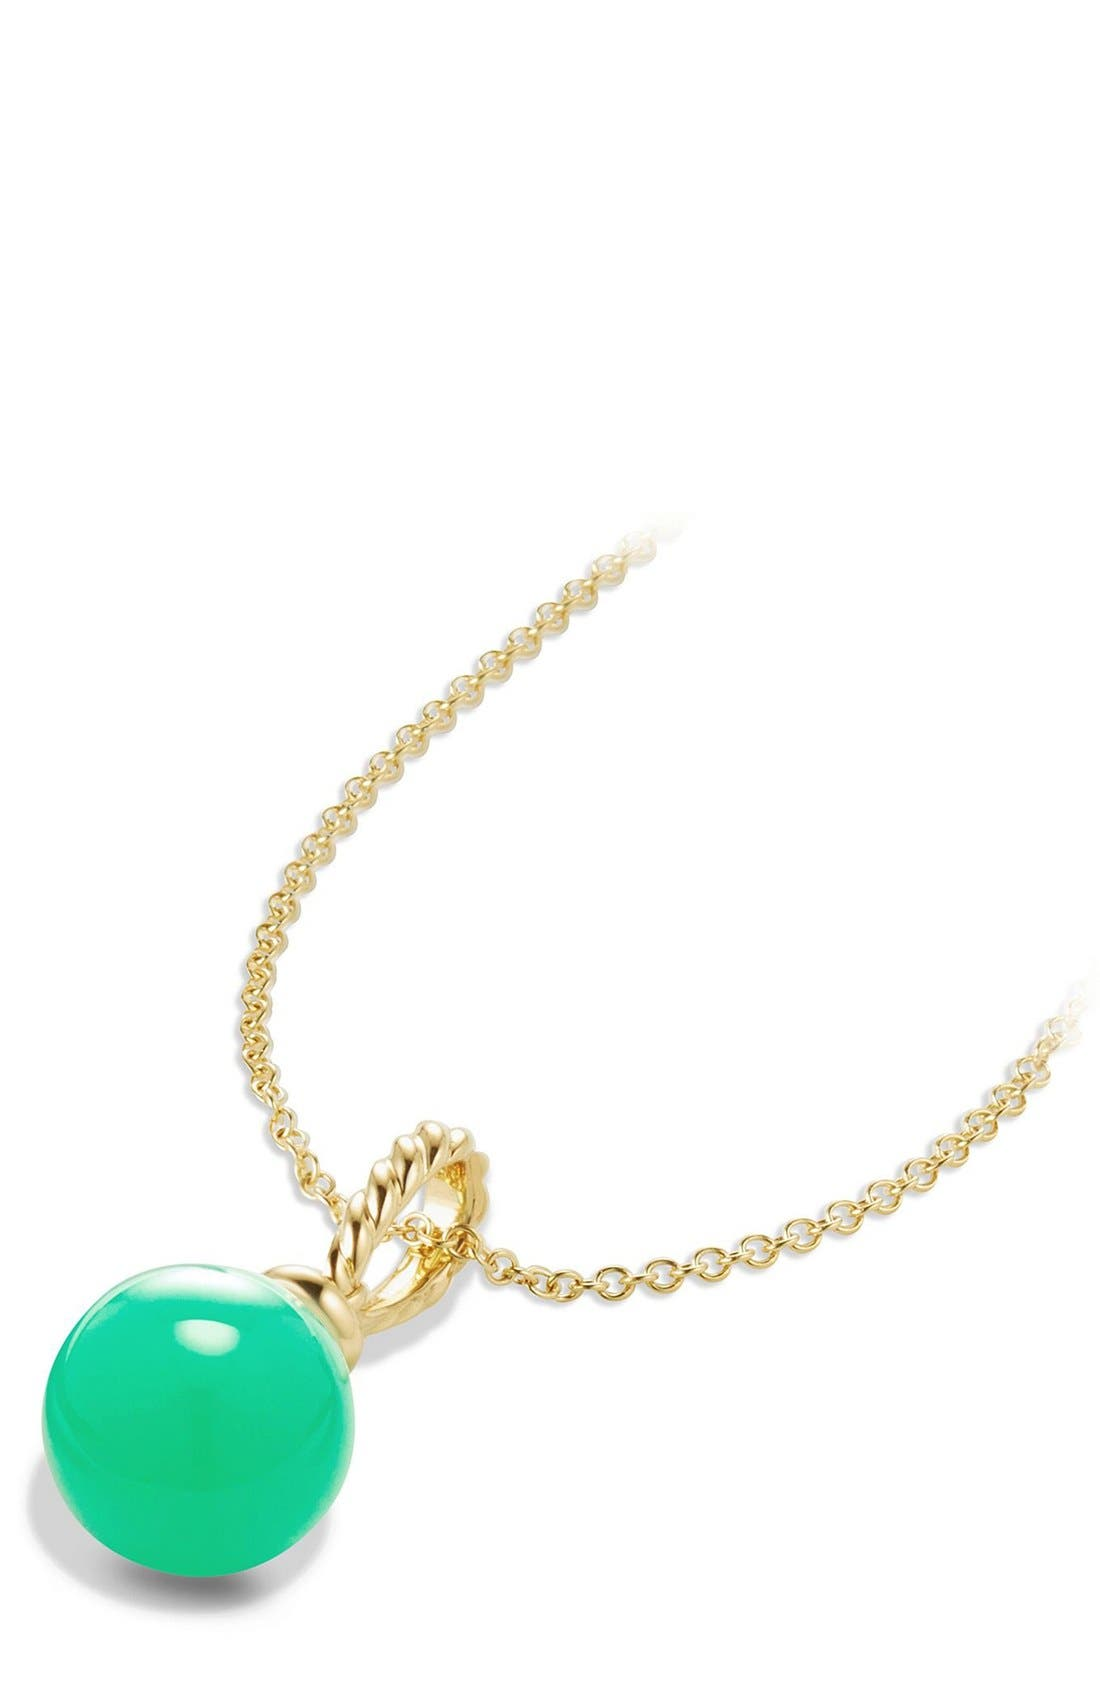 'Solari' Pendant Necklace in 18K Gold,                             Alternate thumbnail 2, color,                             CHRYSOPRASE